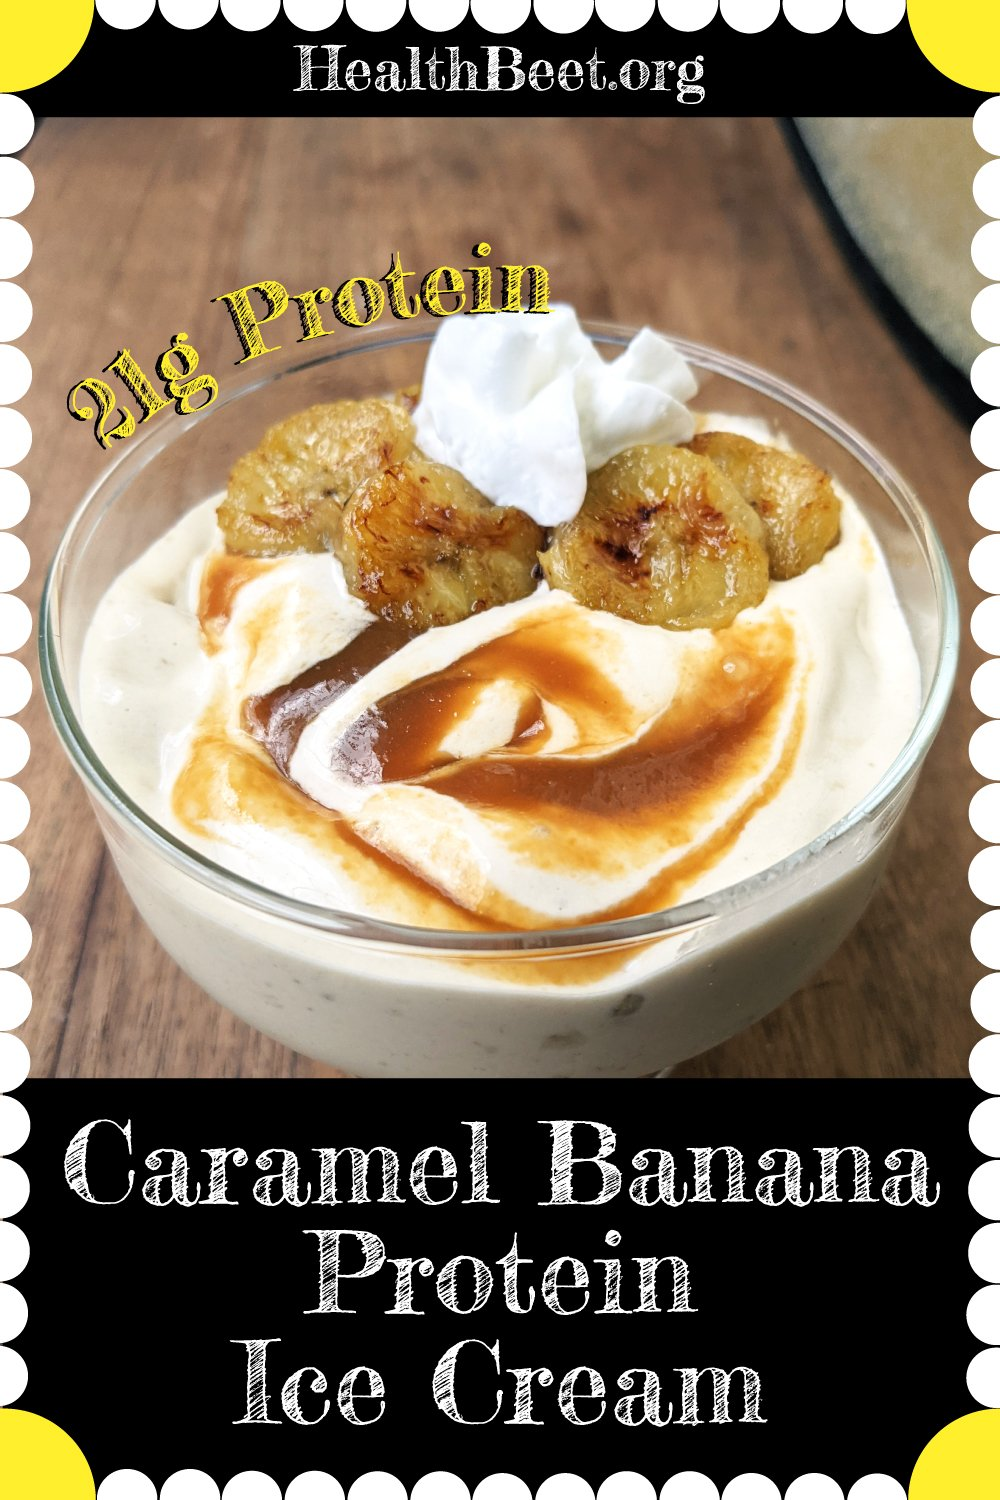 caramel banana protein ice cream with 21 grams of protein